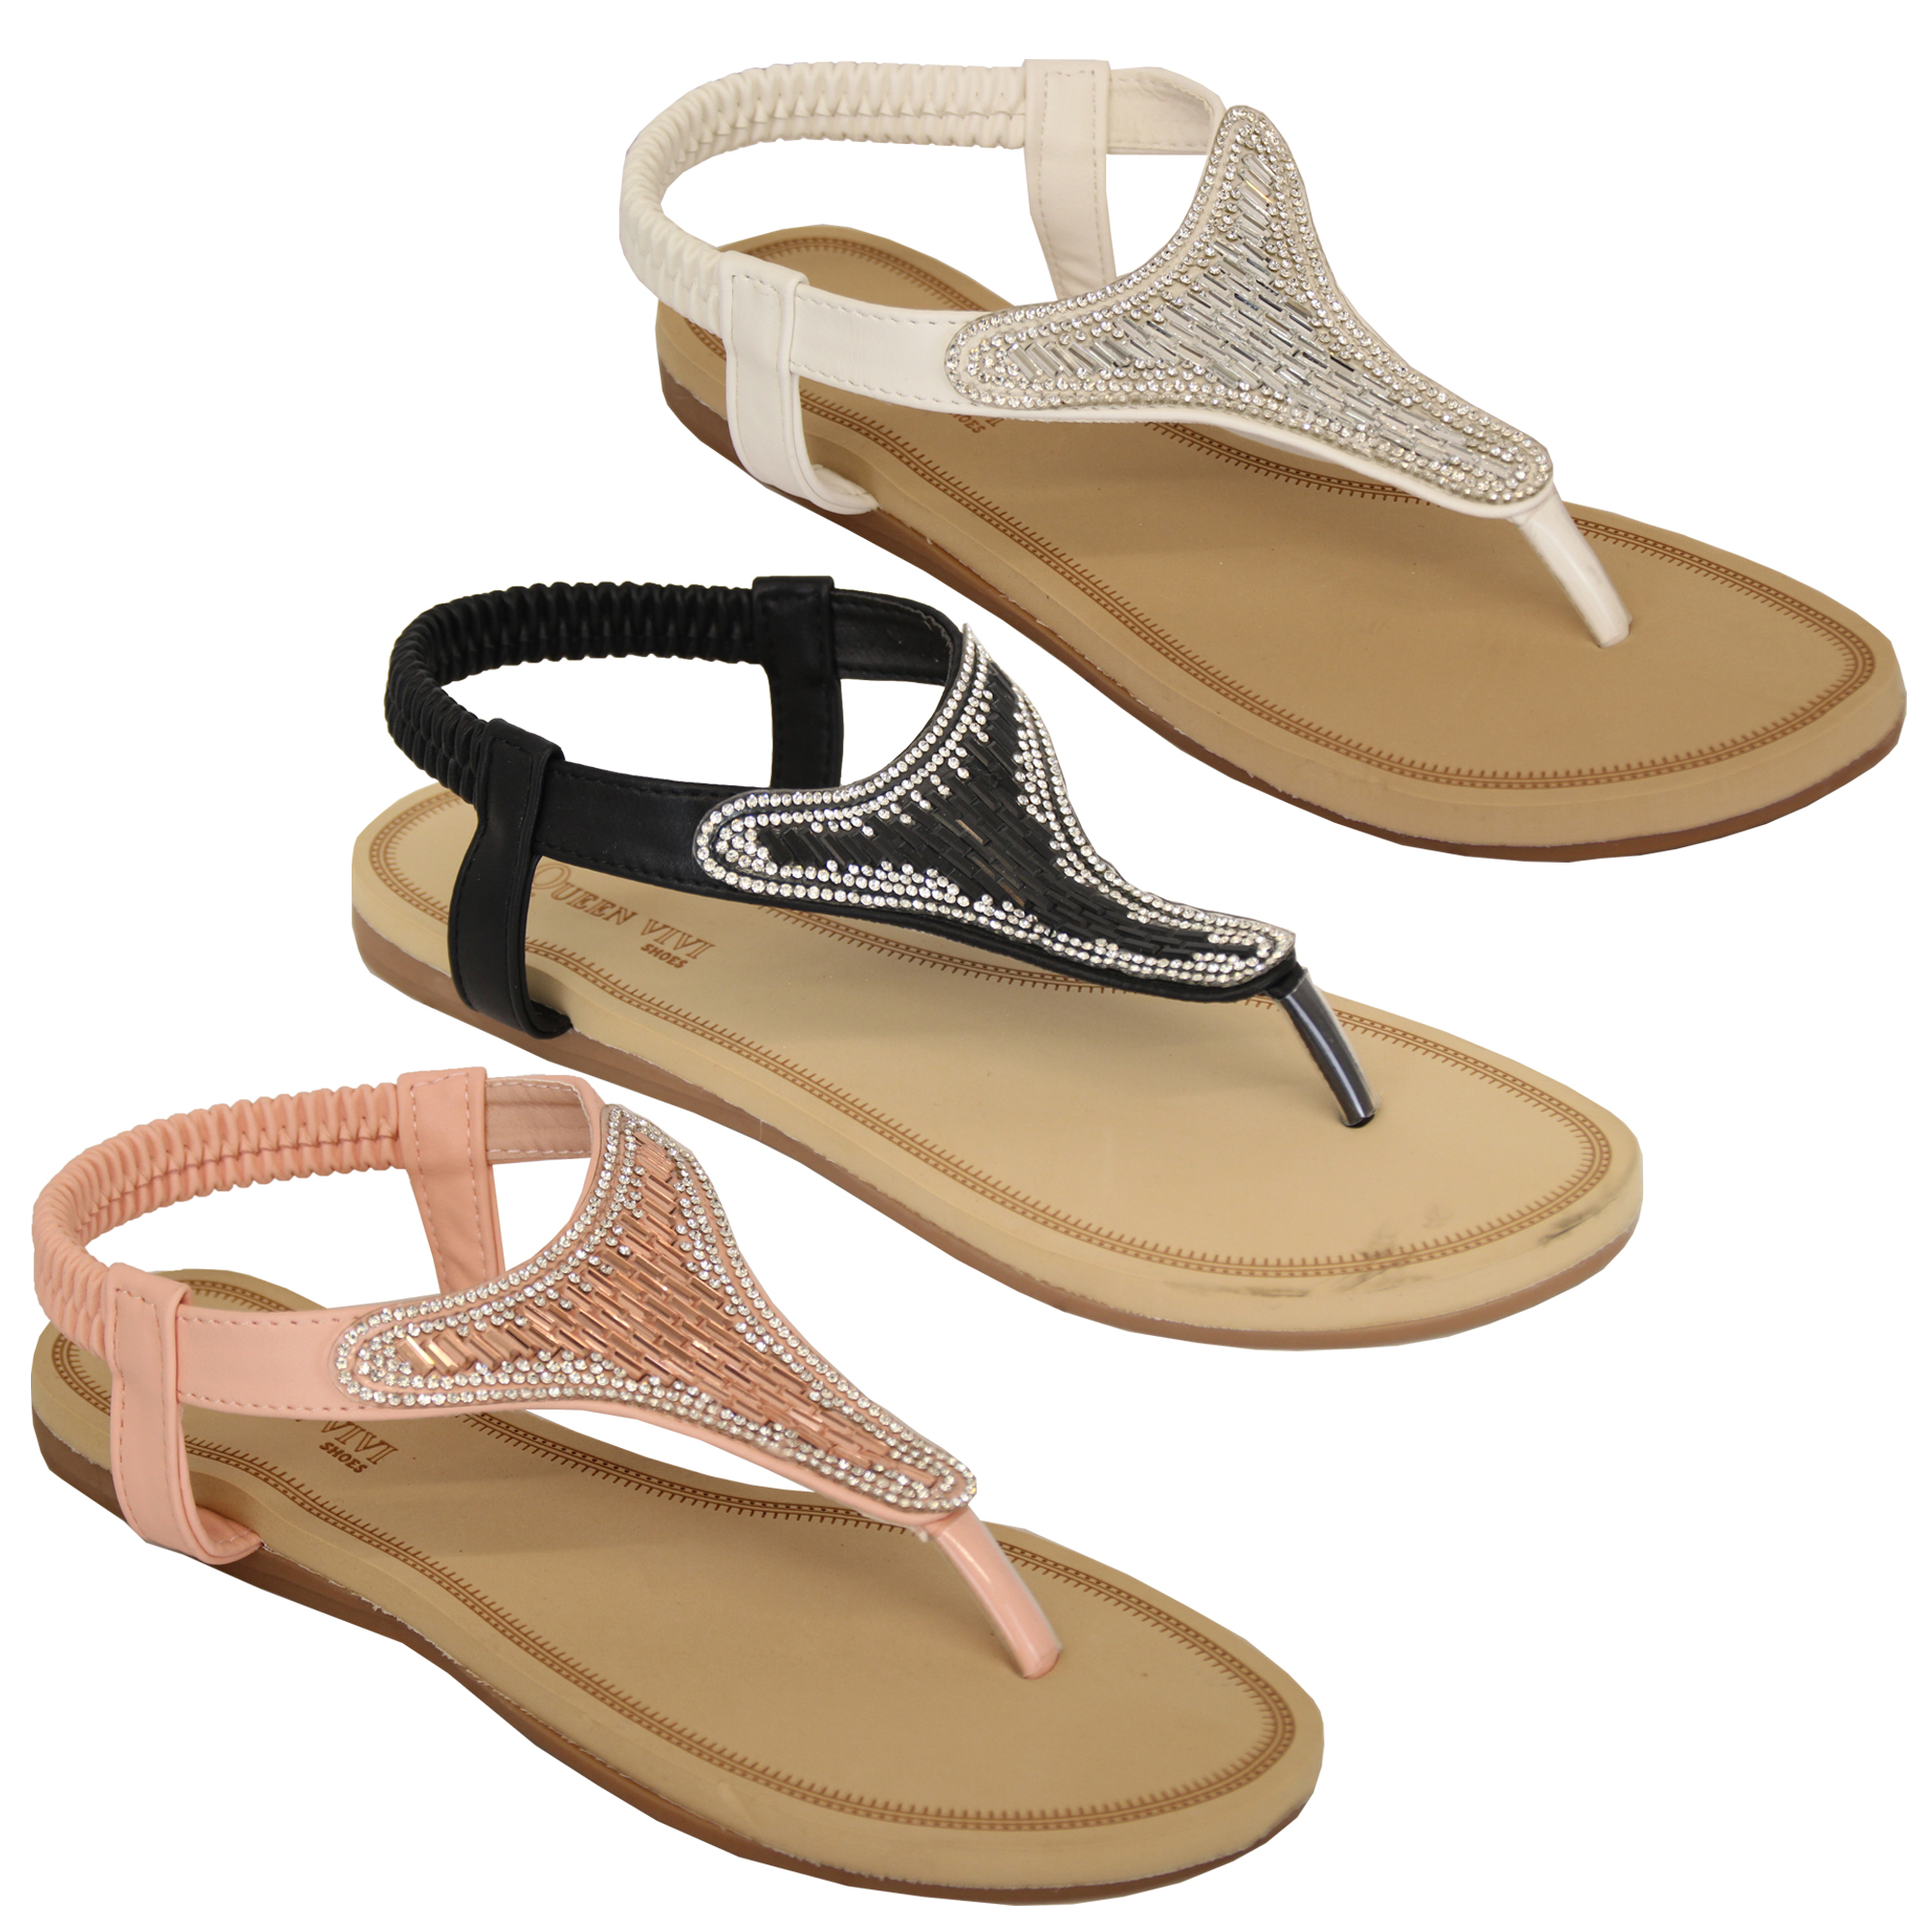 Ladies-Diamante-Sandals-Womens-Slip-On-Toe-Post-Shoes-Party-Wedding-Fashion-New thumbnail 7